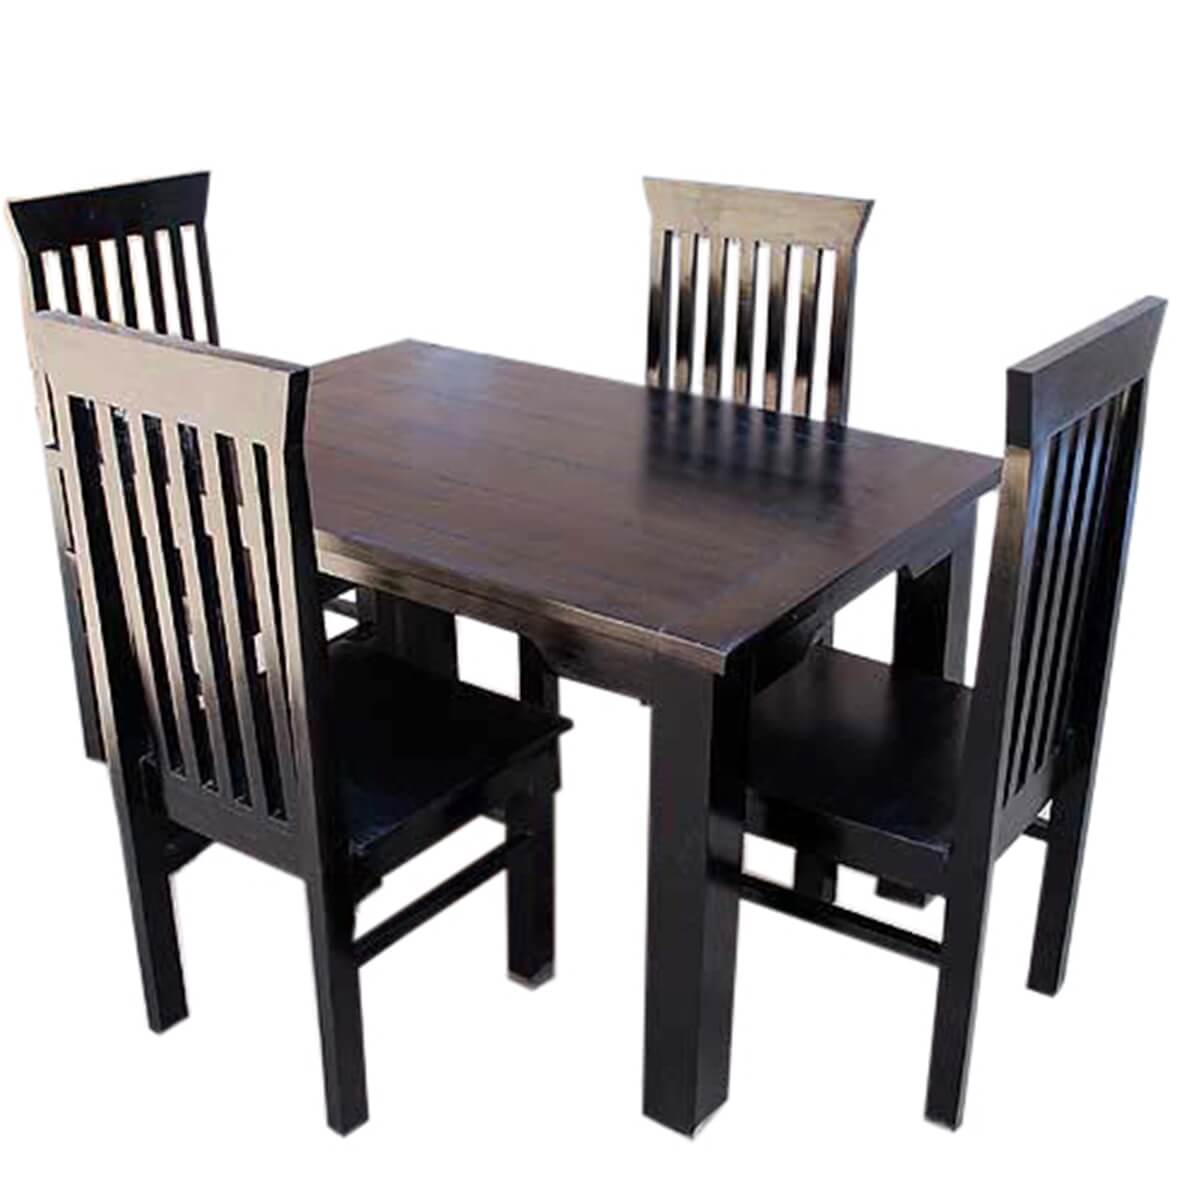 Kitchen And Dining Room Chairs Contemporary Lincoln Kitchen Dining Room Table And Chairs Set